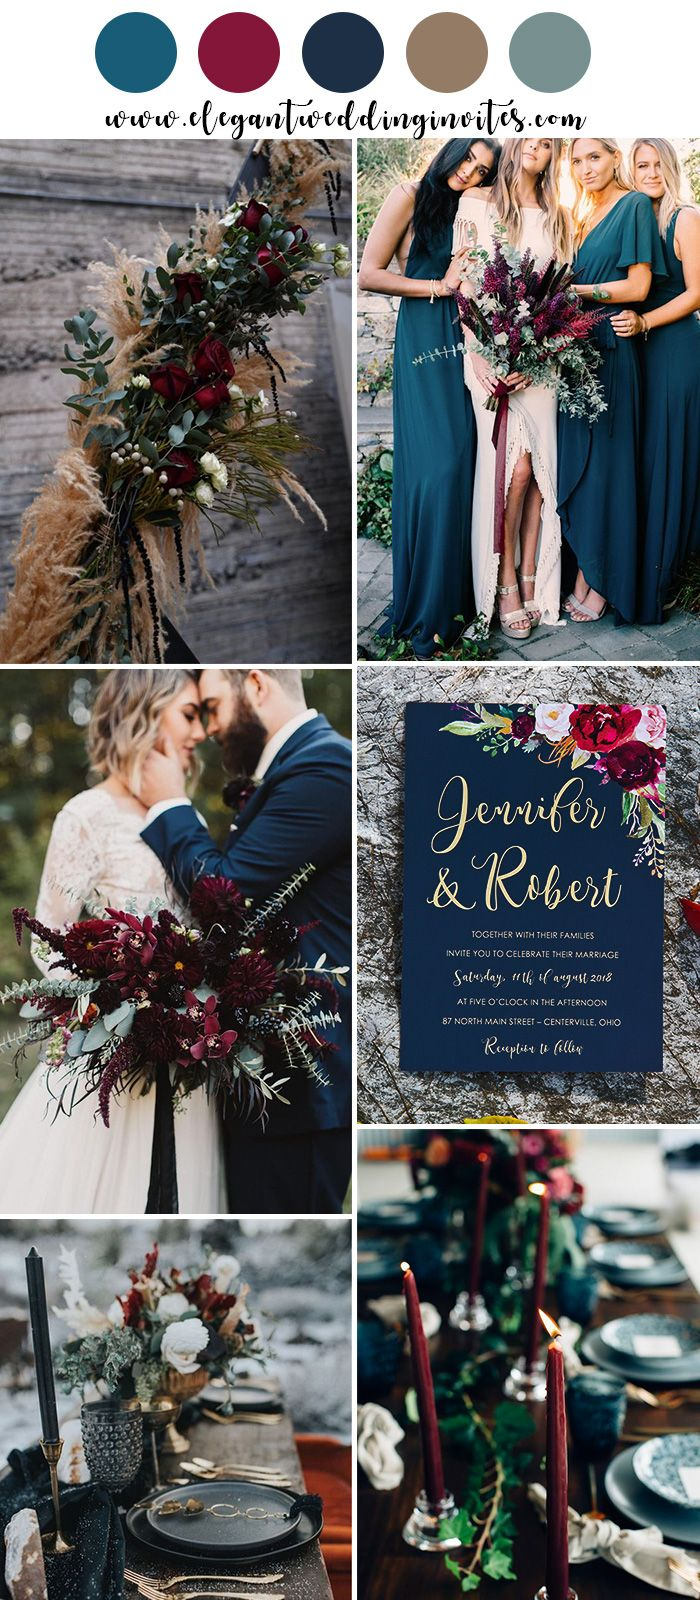 Moody Boho Chic Wedding Ideas With Matching Floral Wedding Invites Elegantweddinginvites Com Blog Fall Wedding Colors Floral Wedding Invitations Wedding Theme Colors